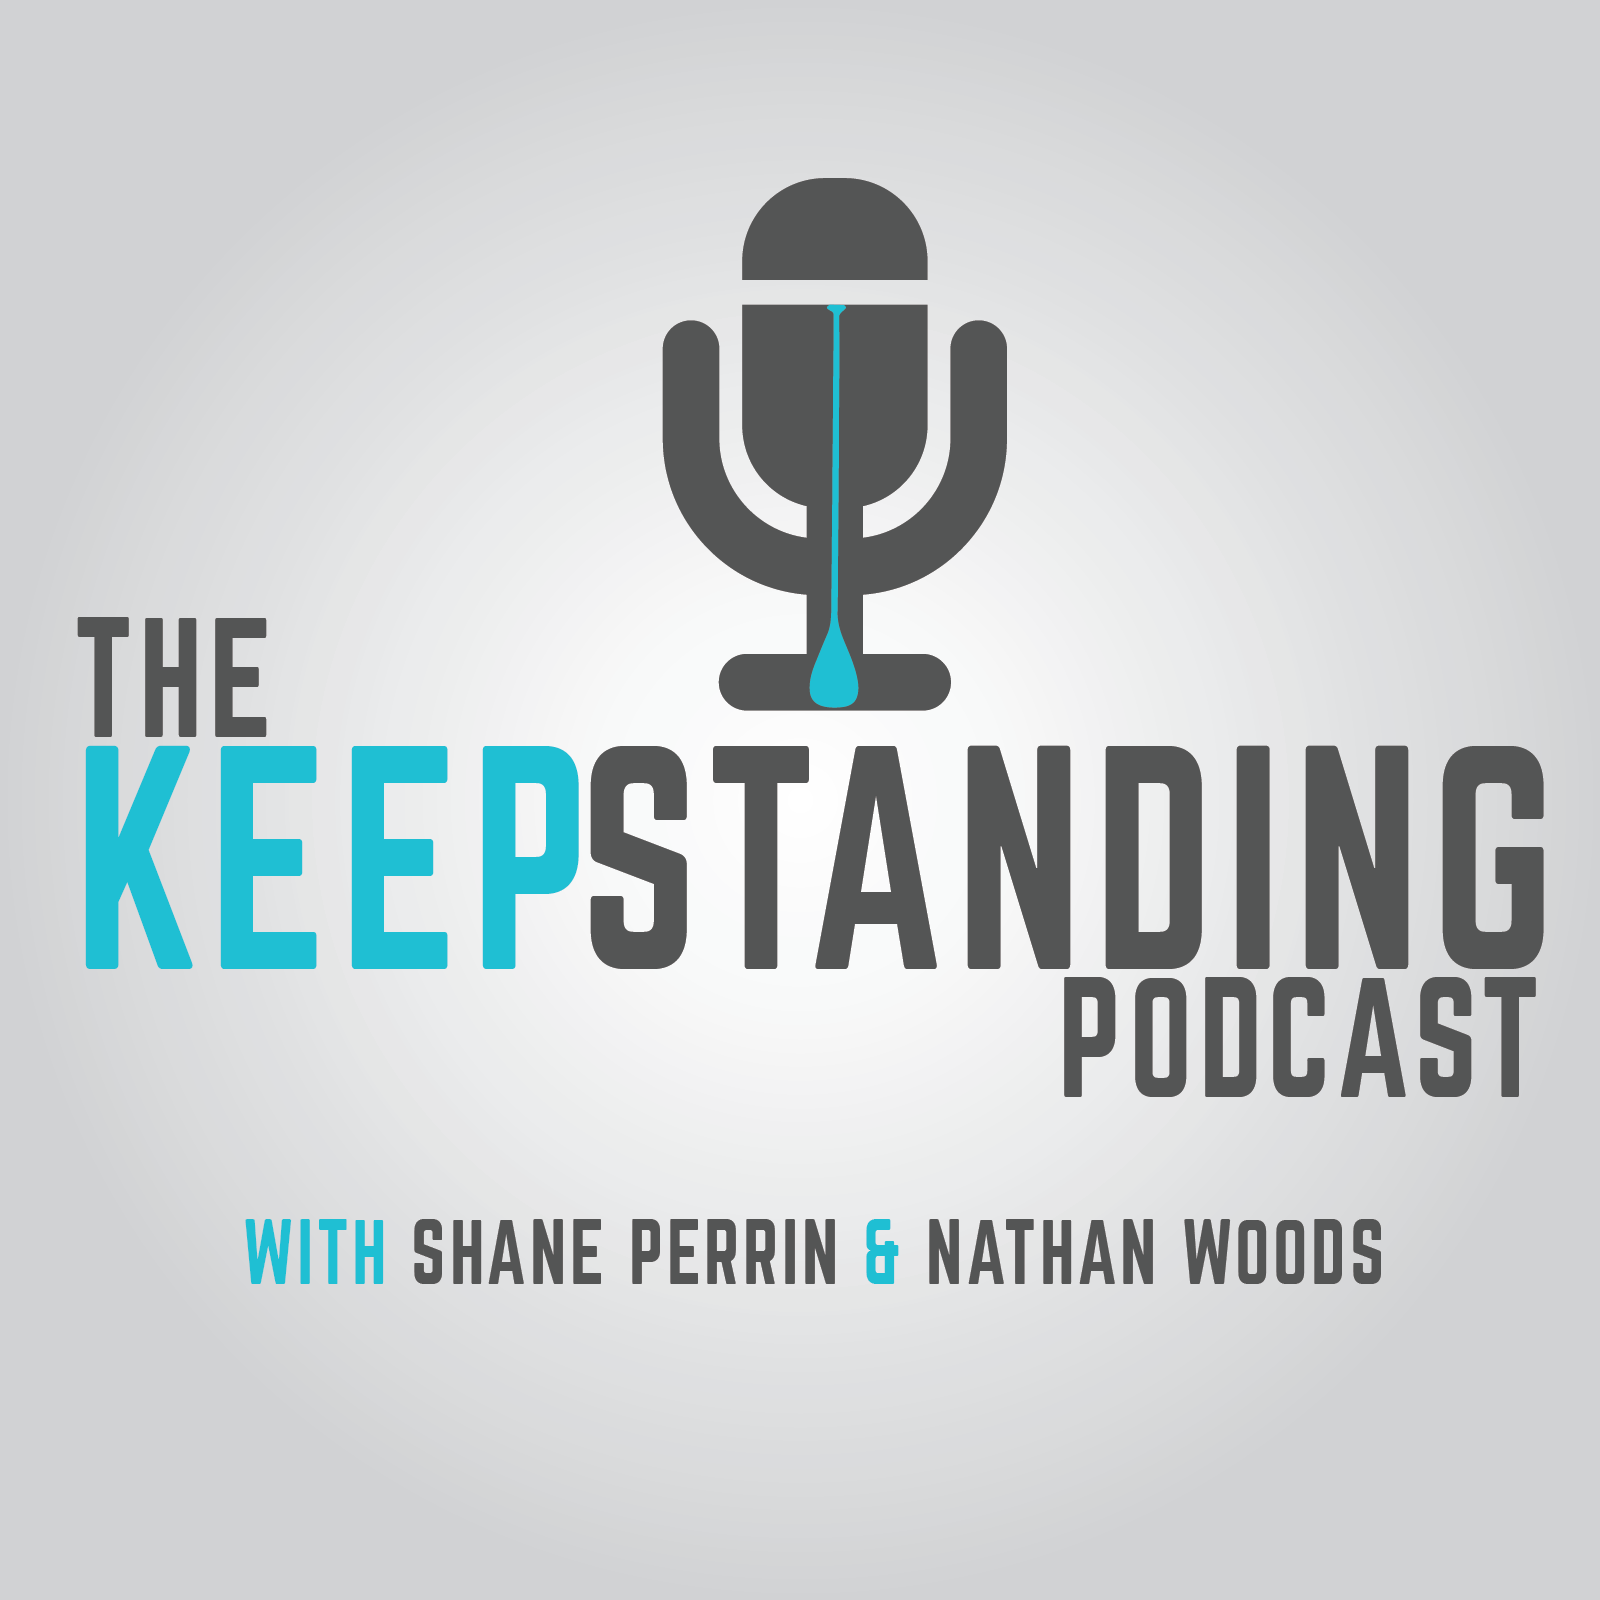 The Keep Standing Podcast